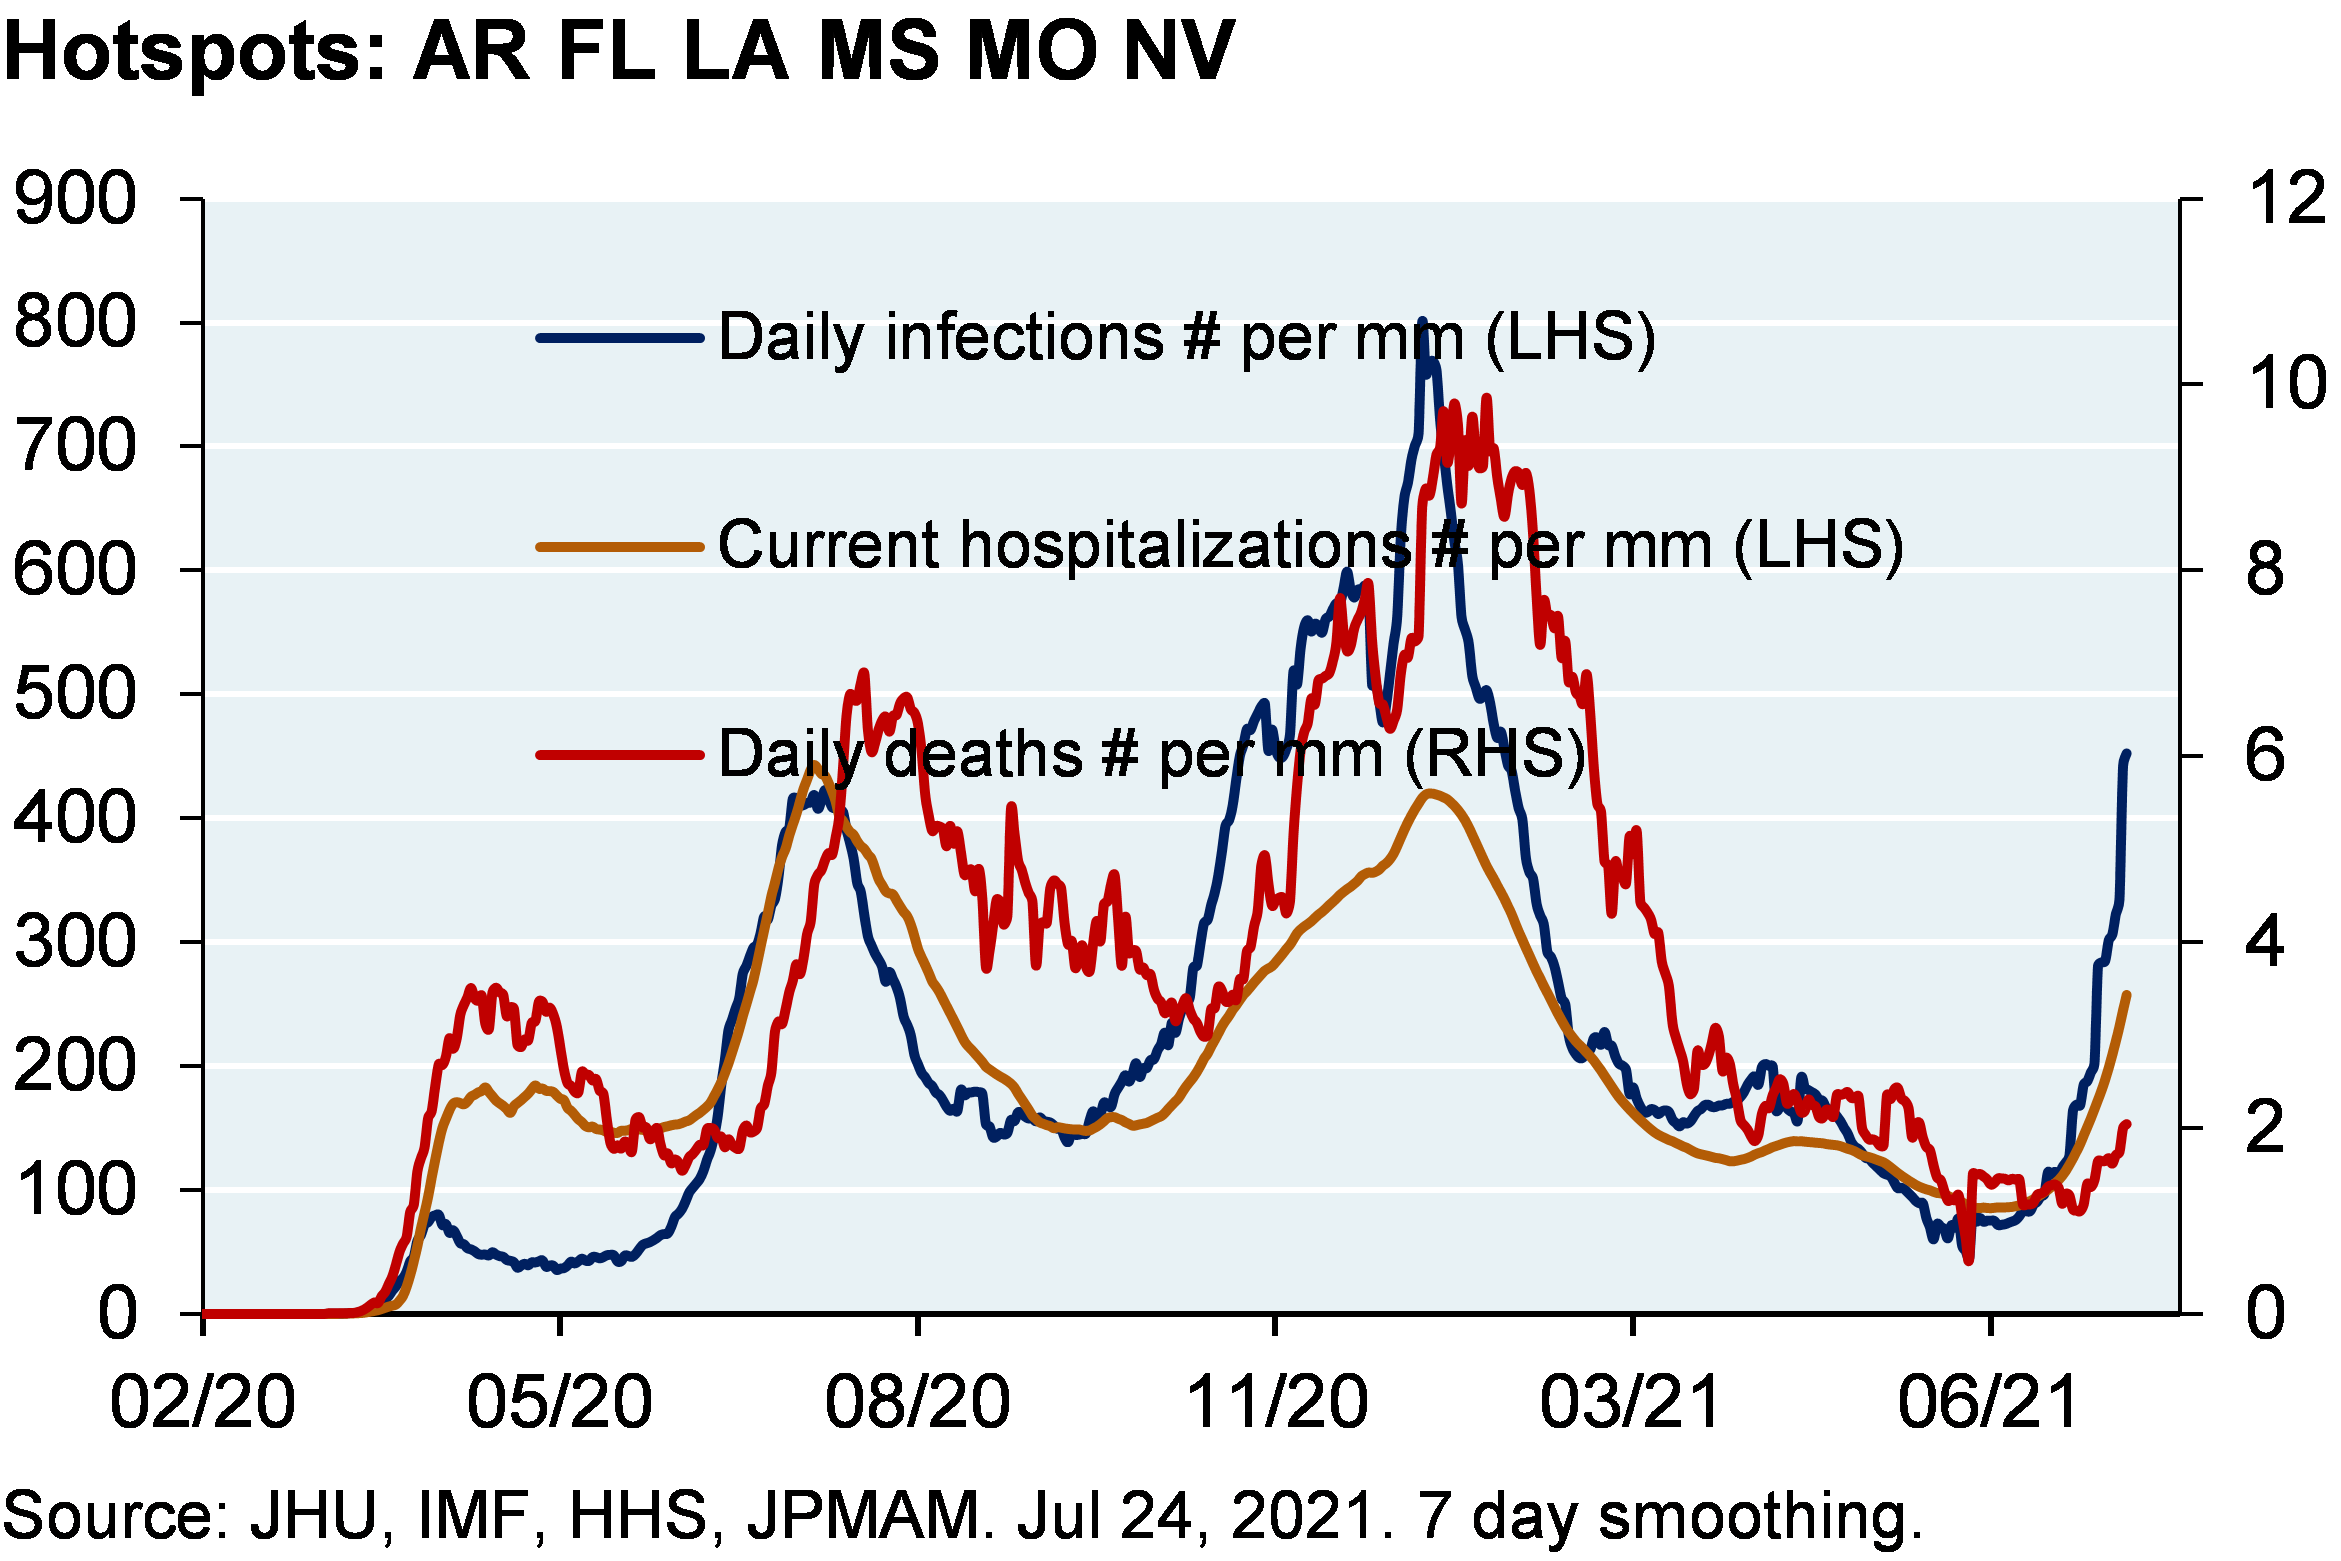 Line chart shows daily infections per million, current hospitalizations per million and daily deaths per million among the hotspot states (Arkansas, Florida, Louisiana, Mississippi, Missouri and Nevada). Chart shows that daily infections per million have spiked in the hotspot states to around 450 infections per million. Hospitalizations have slightly increased to around 200 hospitalizations per million and deaths have also seen a slight increase to almost 2 deaths per million.